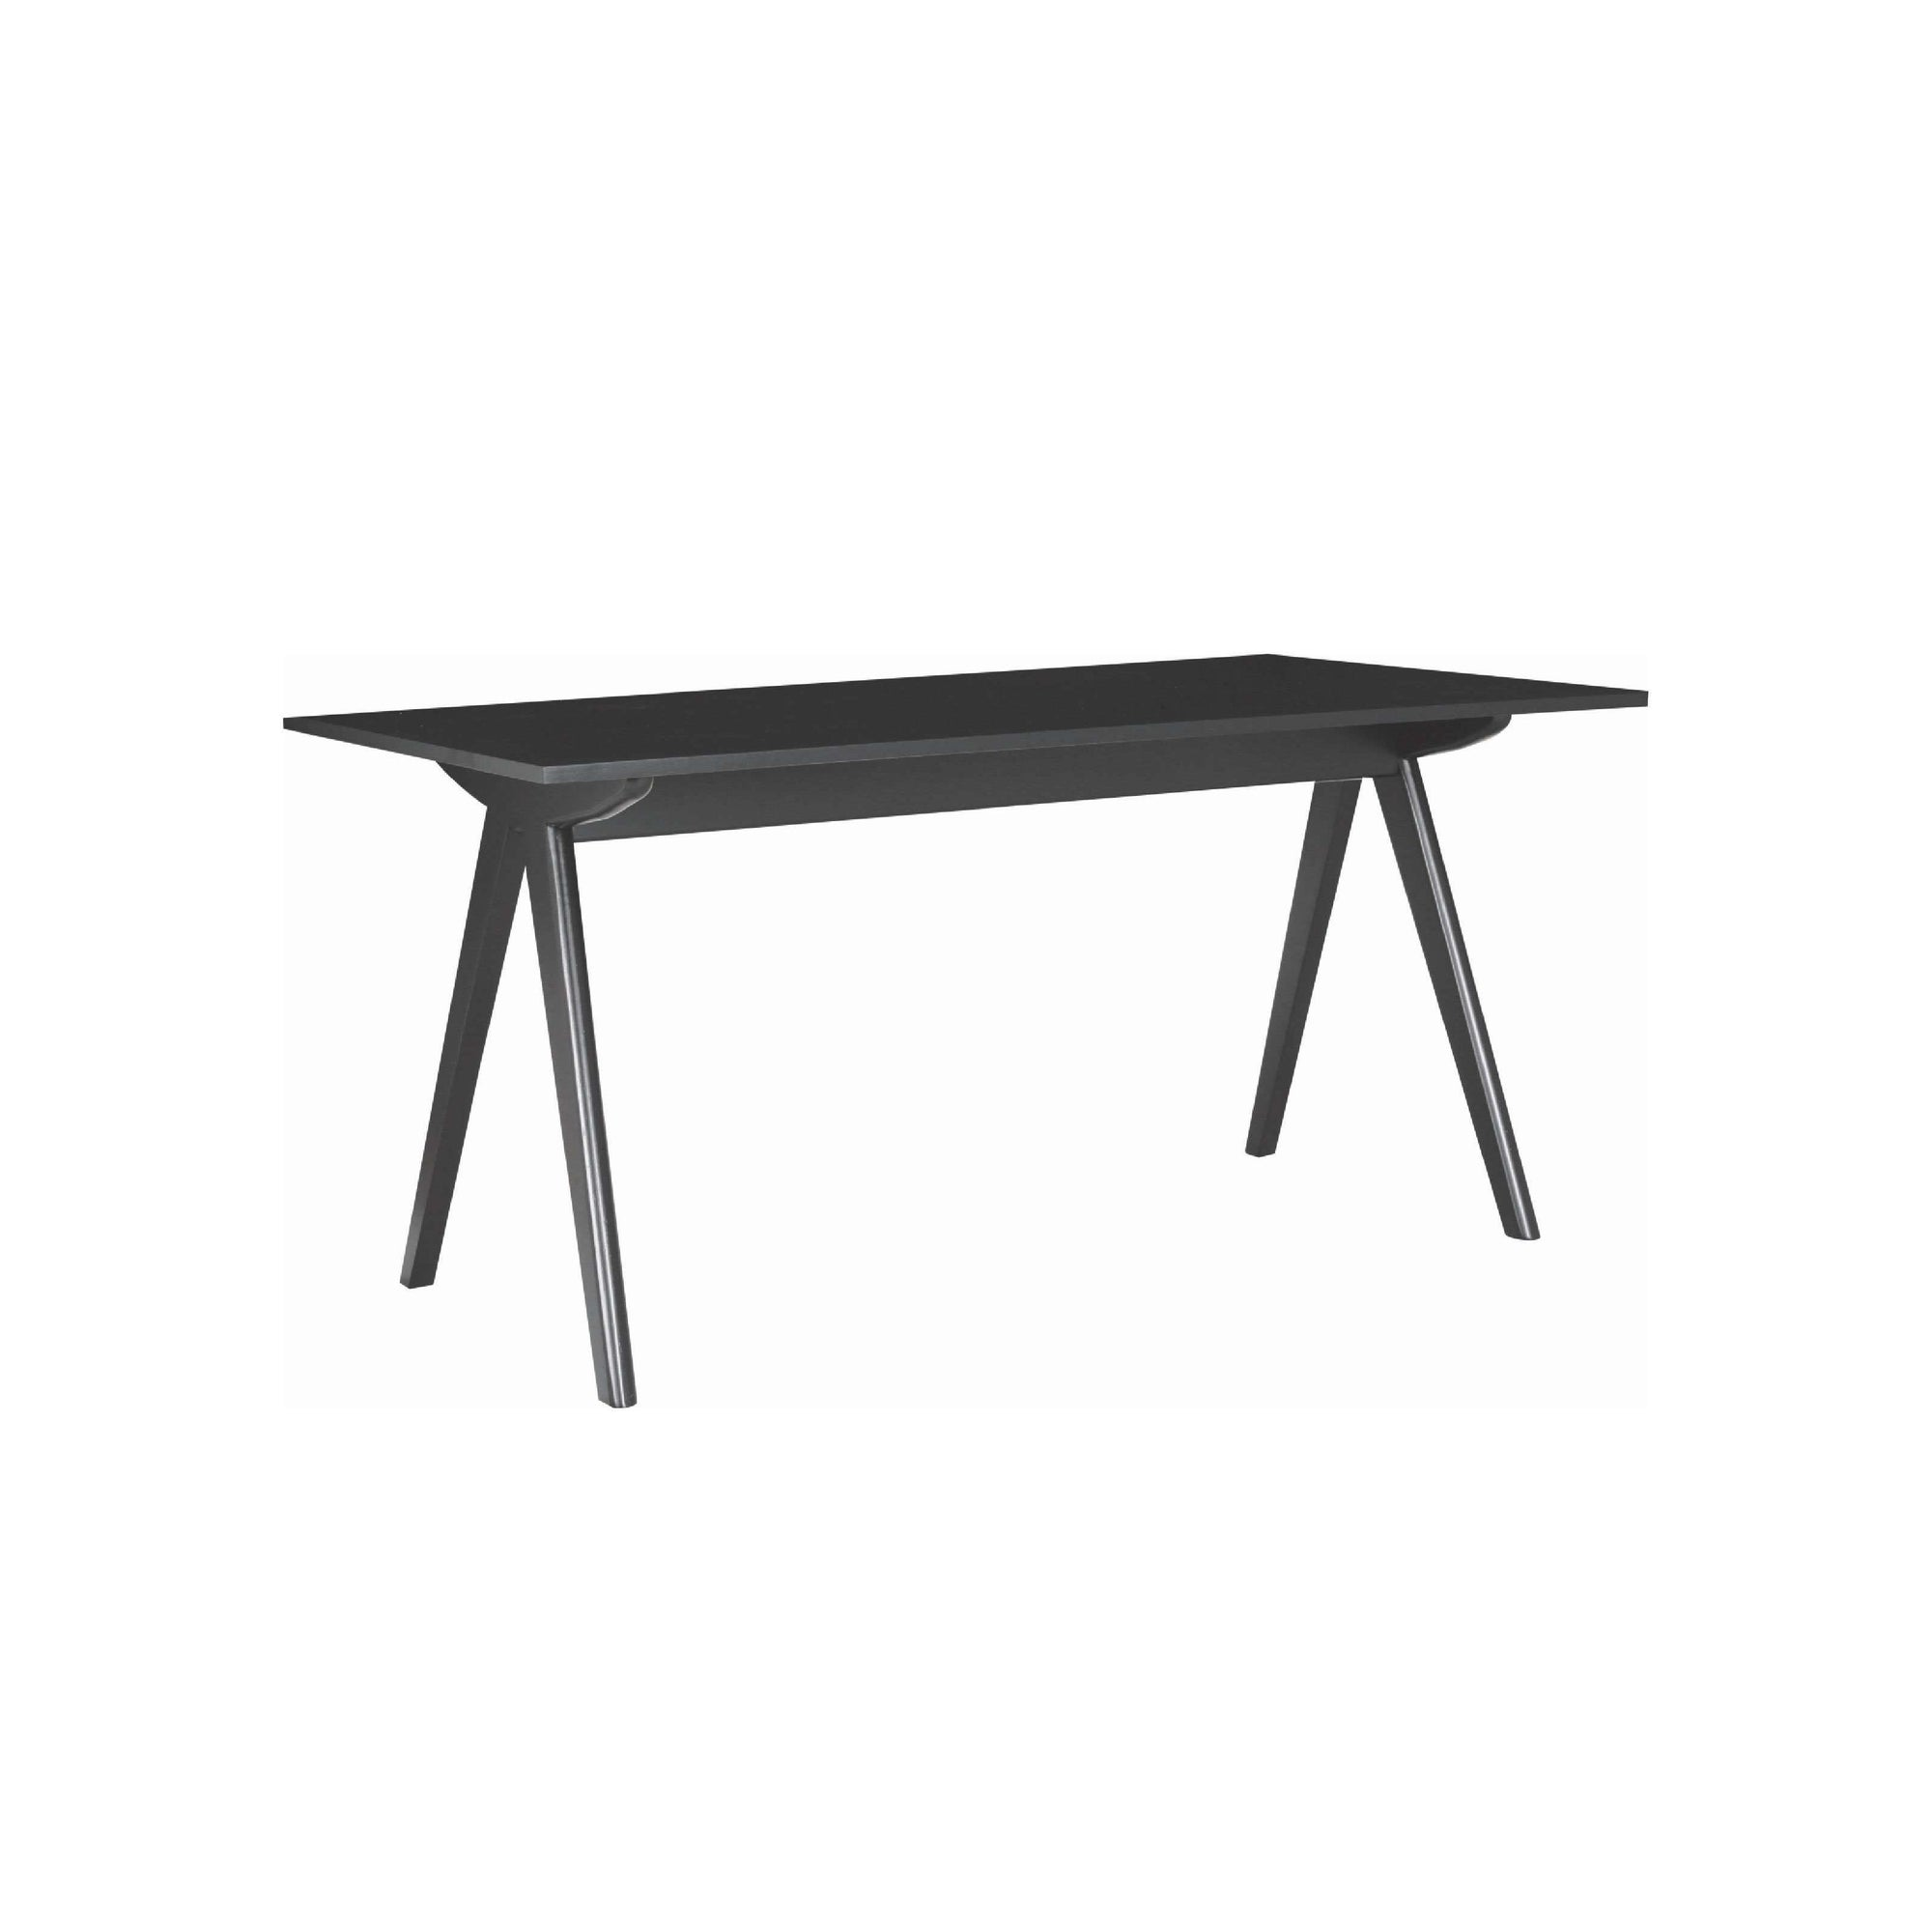 ADEN 1.6m Dining Table with Black Colour Leg, Black Laminate Top